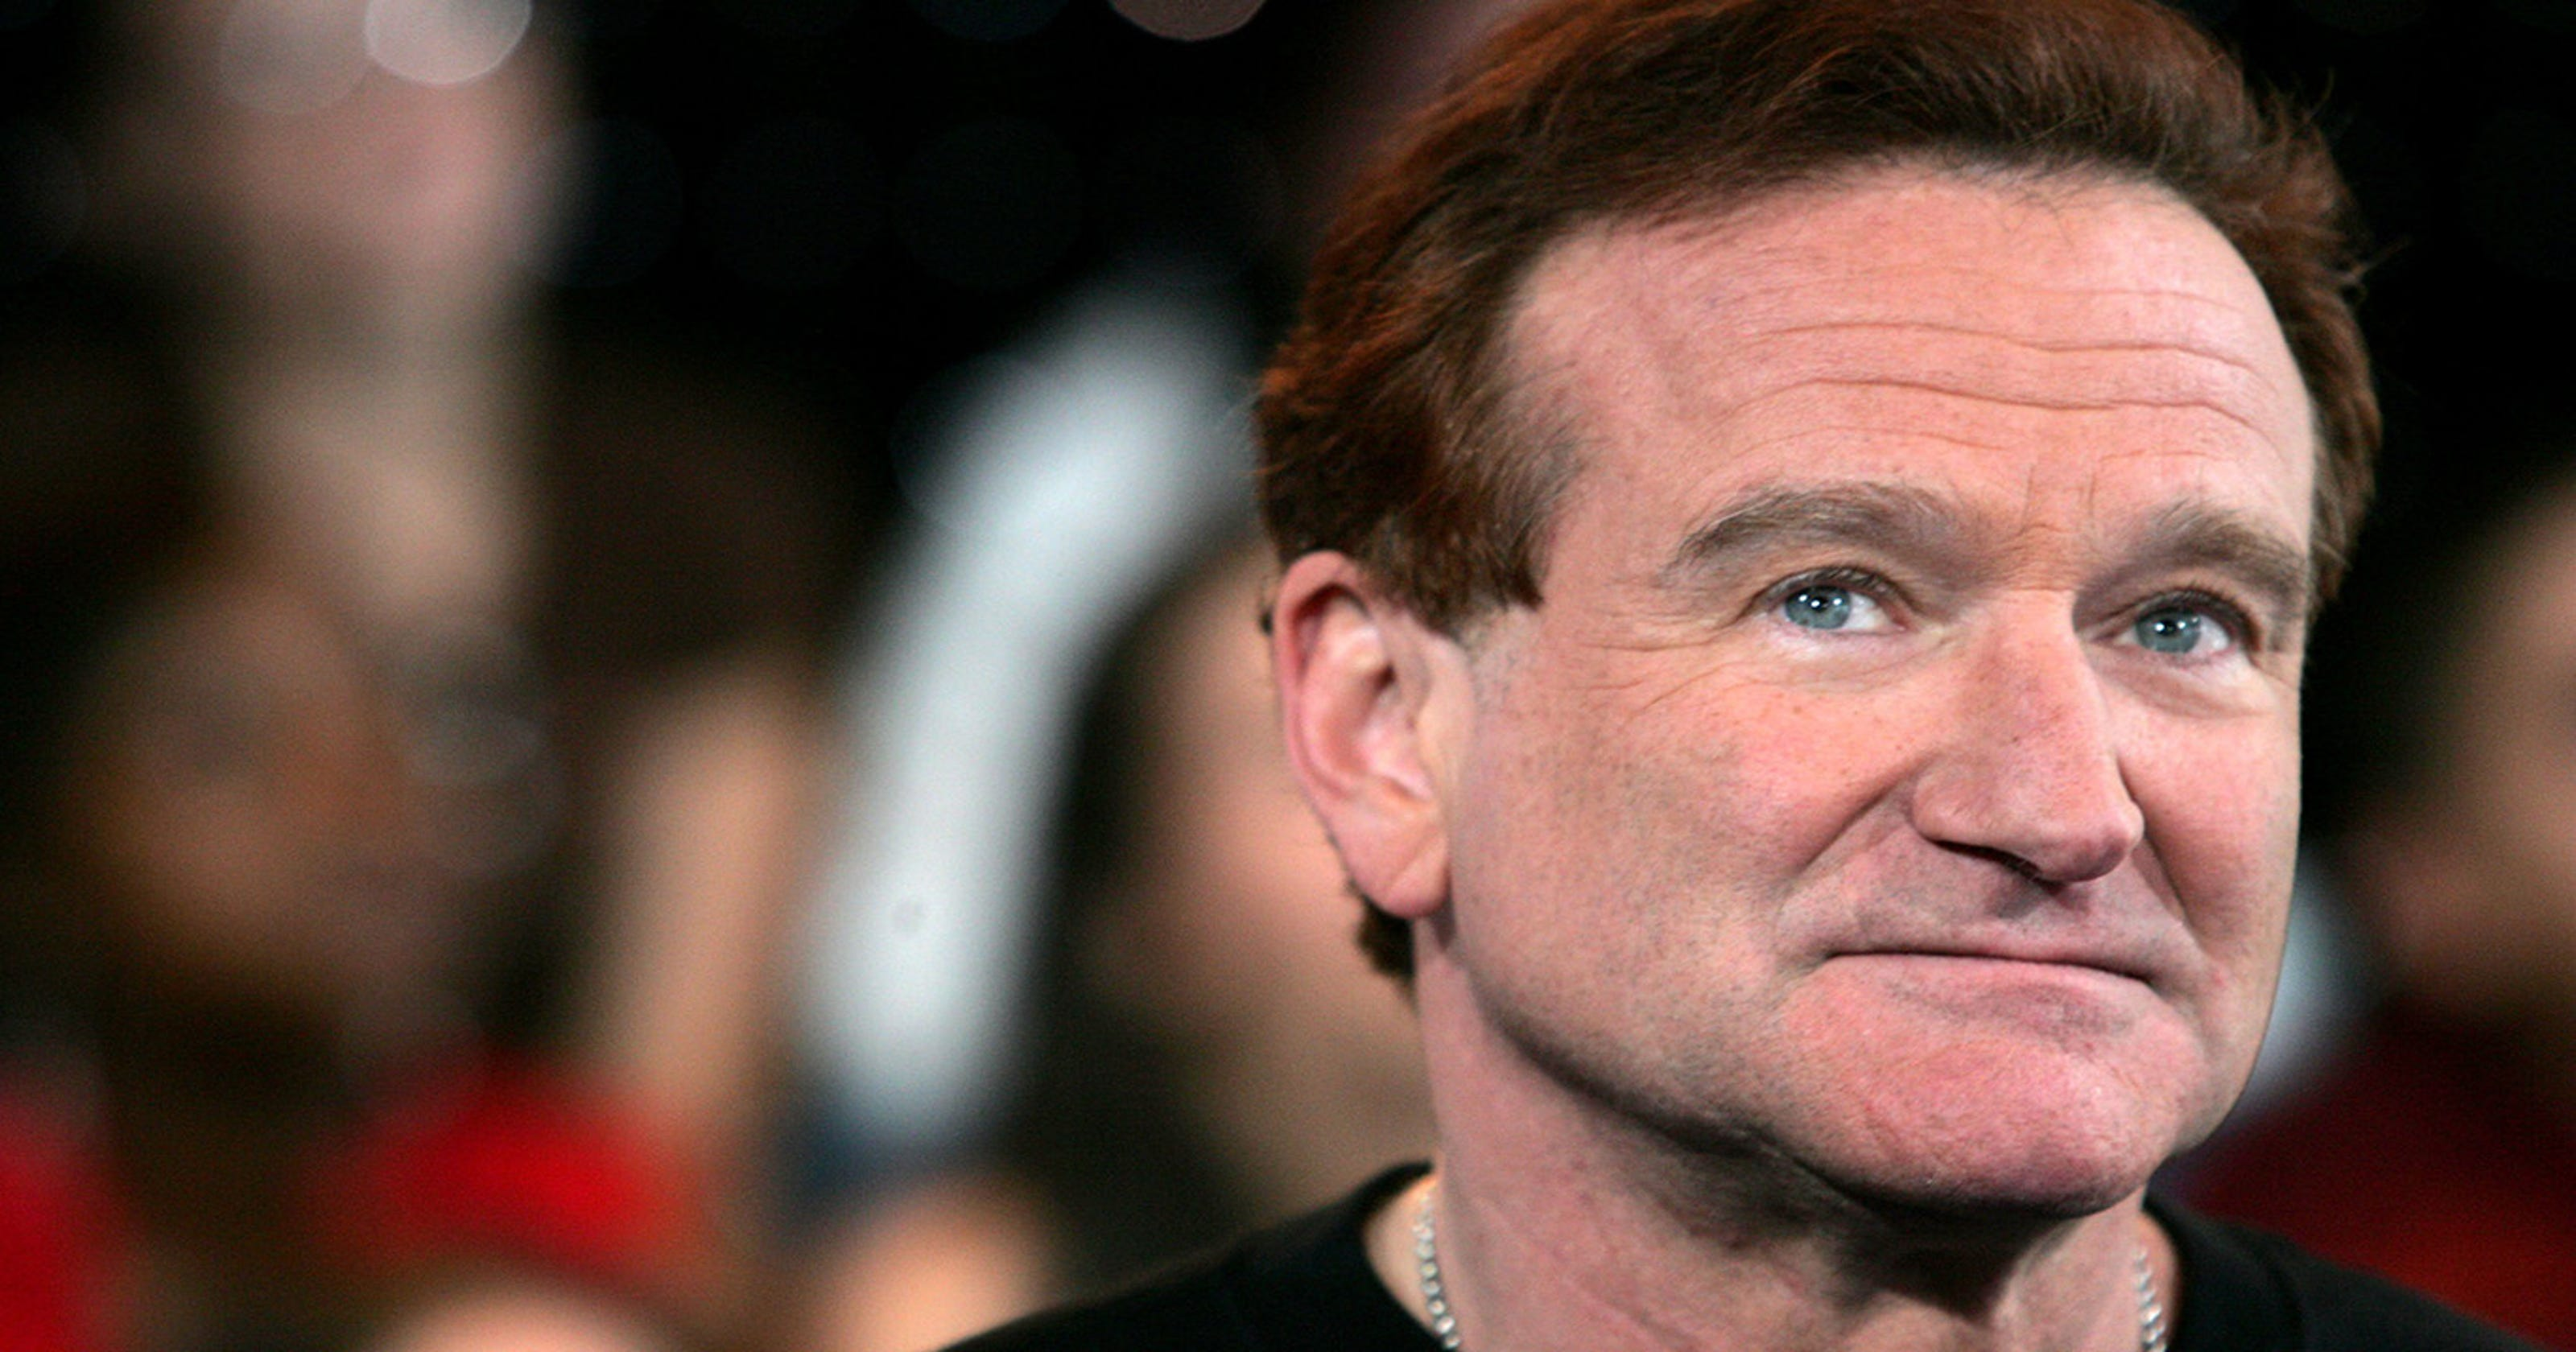 Robin Williams' son says he felt 'helplessness' over father's 'intense personal pain'